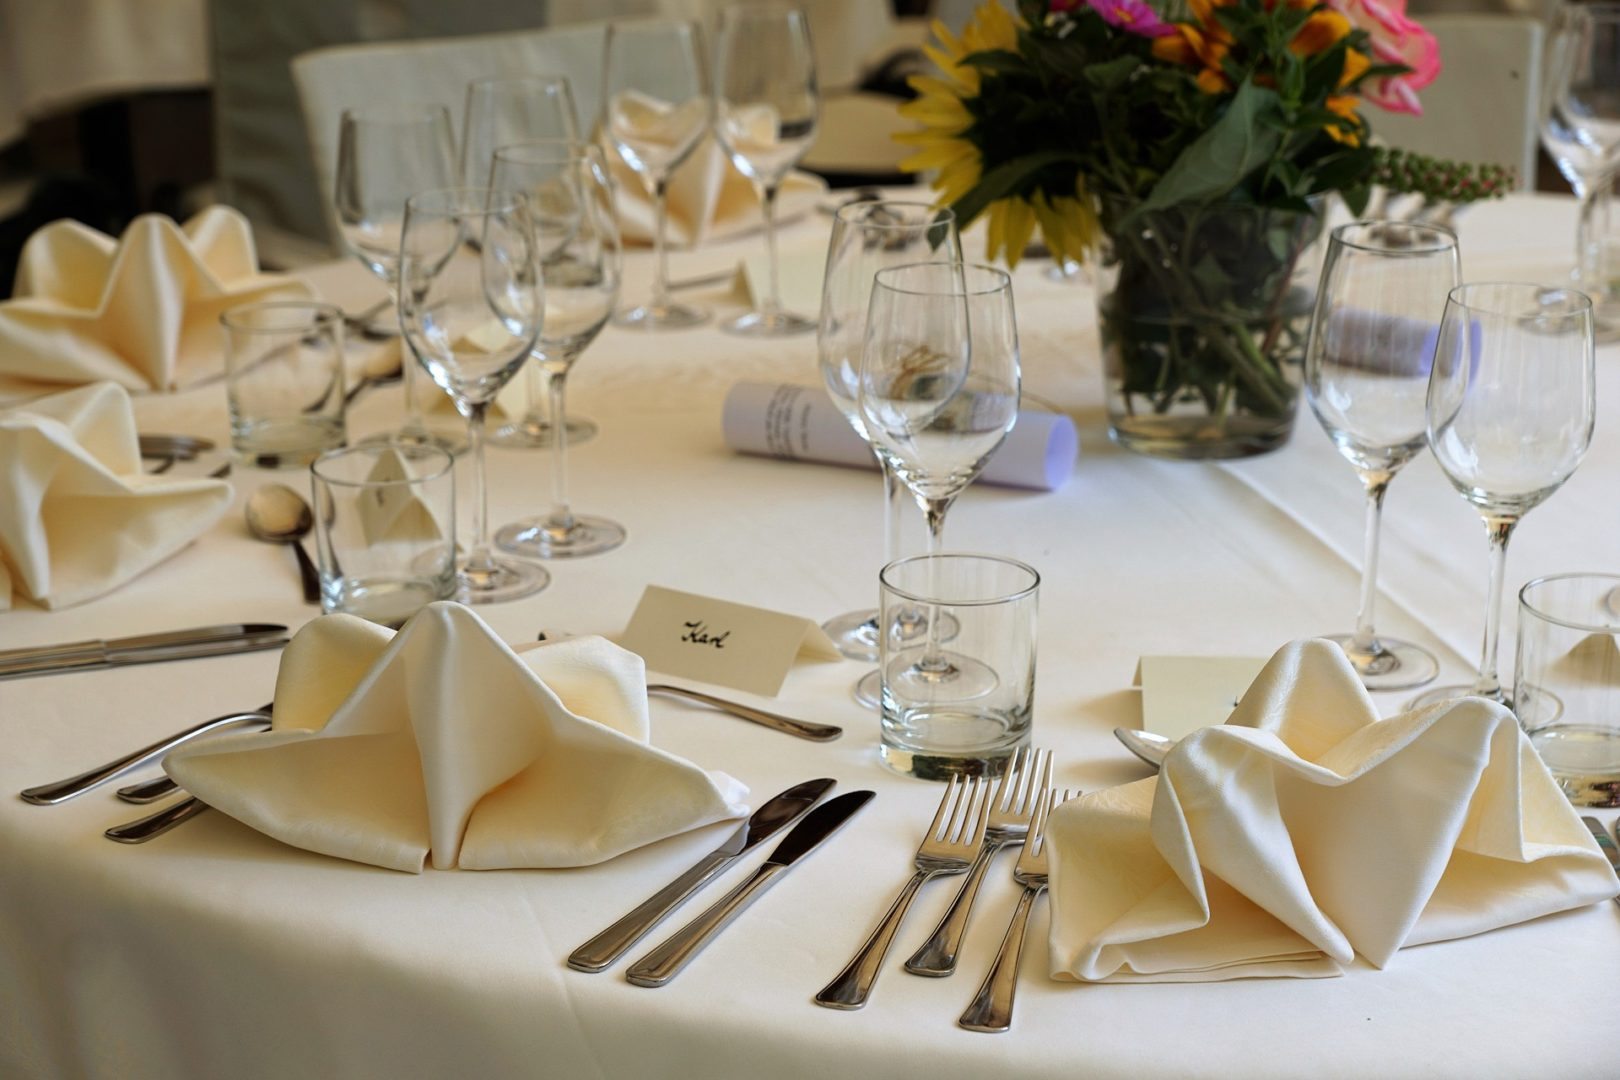 Yacht wedding on a budget keep guests trimmed